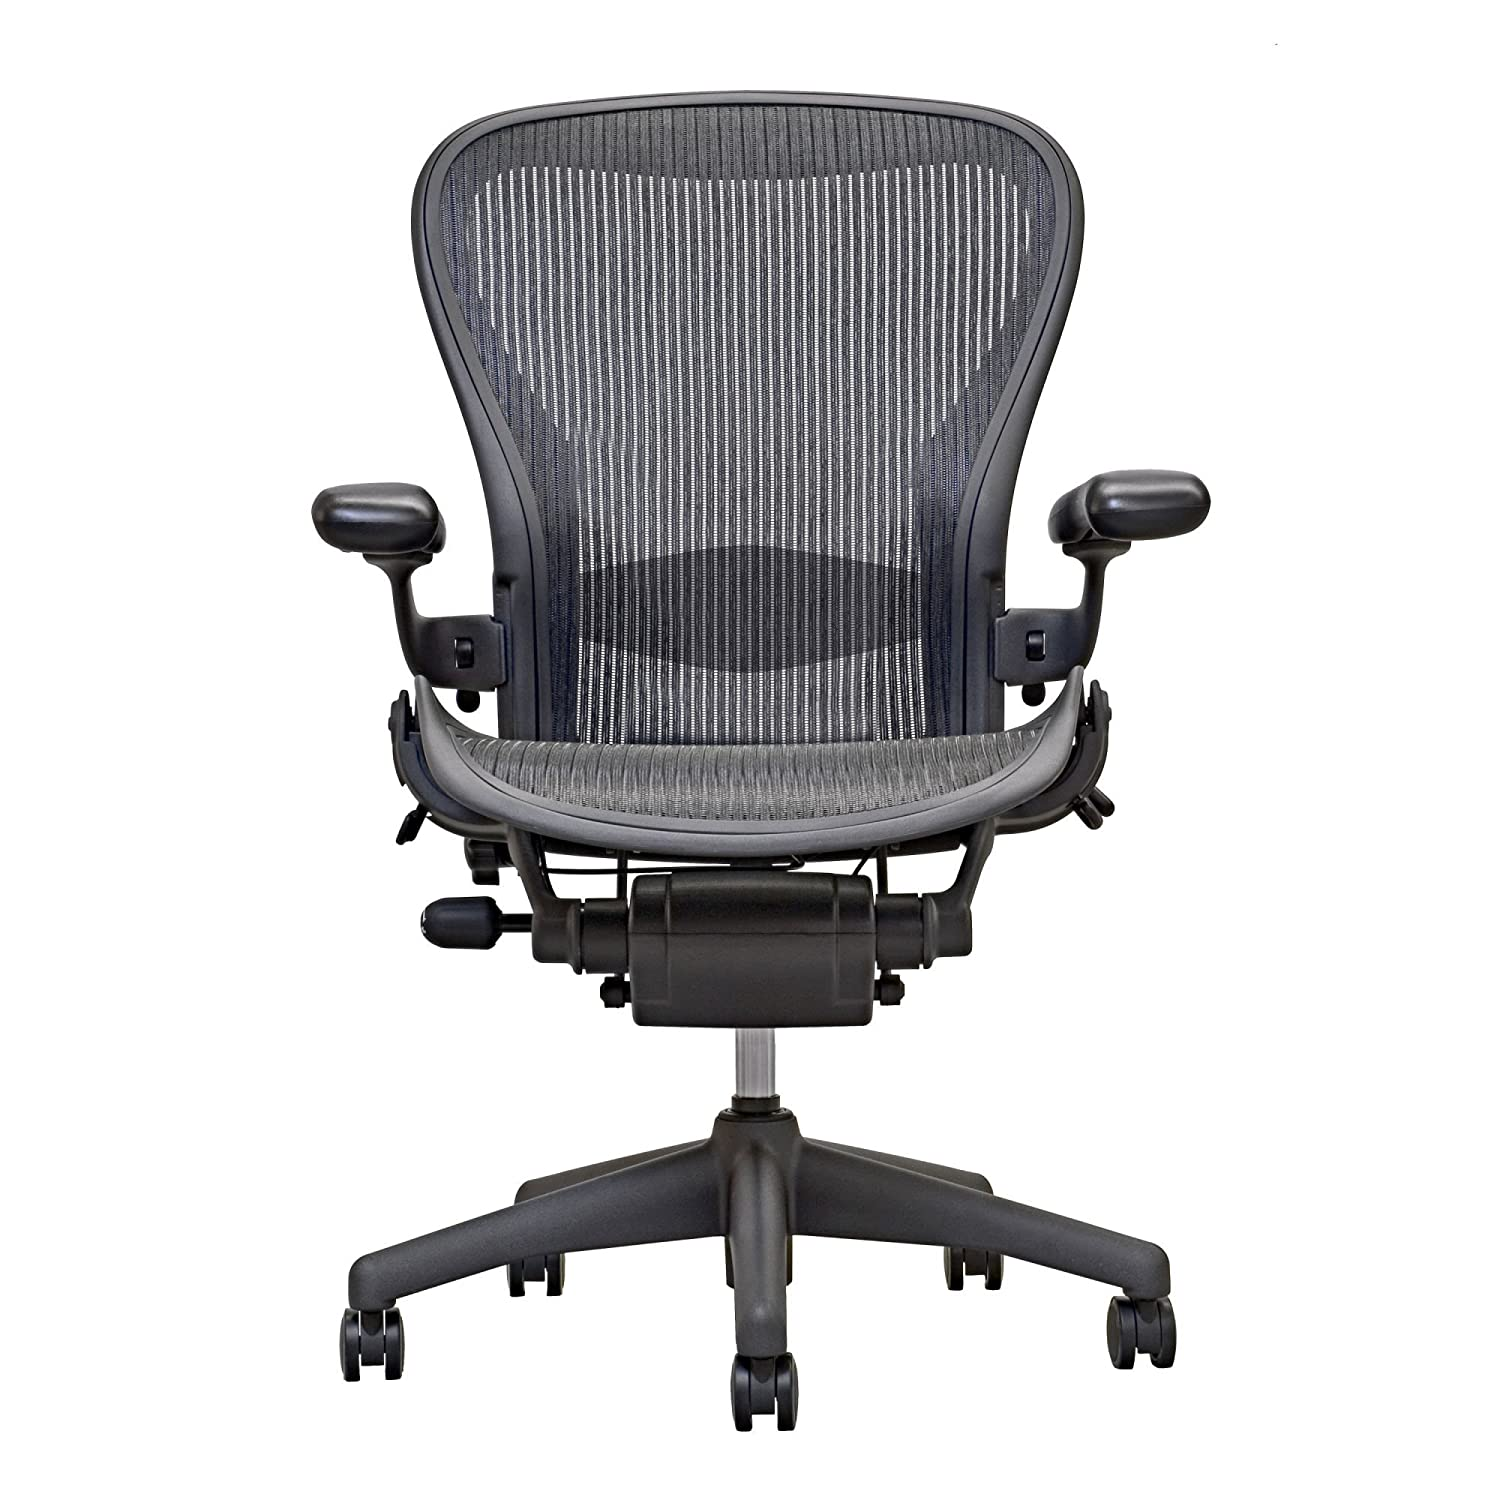 Herman Miller Aeron Chair -Open Box -Size B Fully Loaded